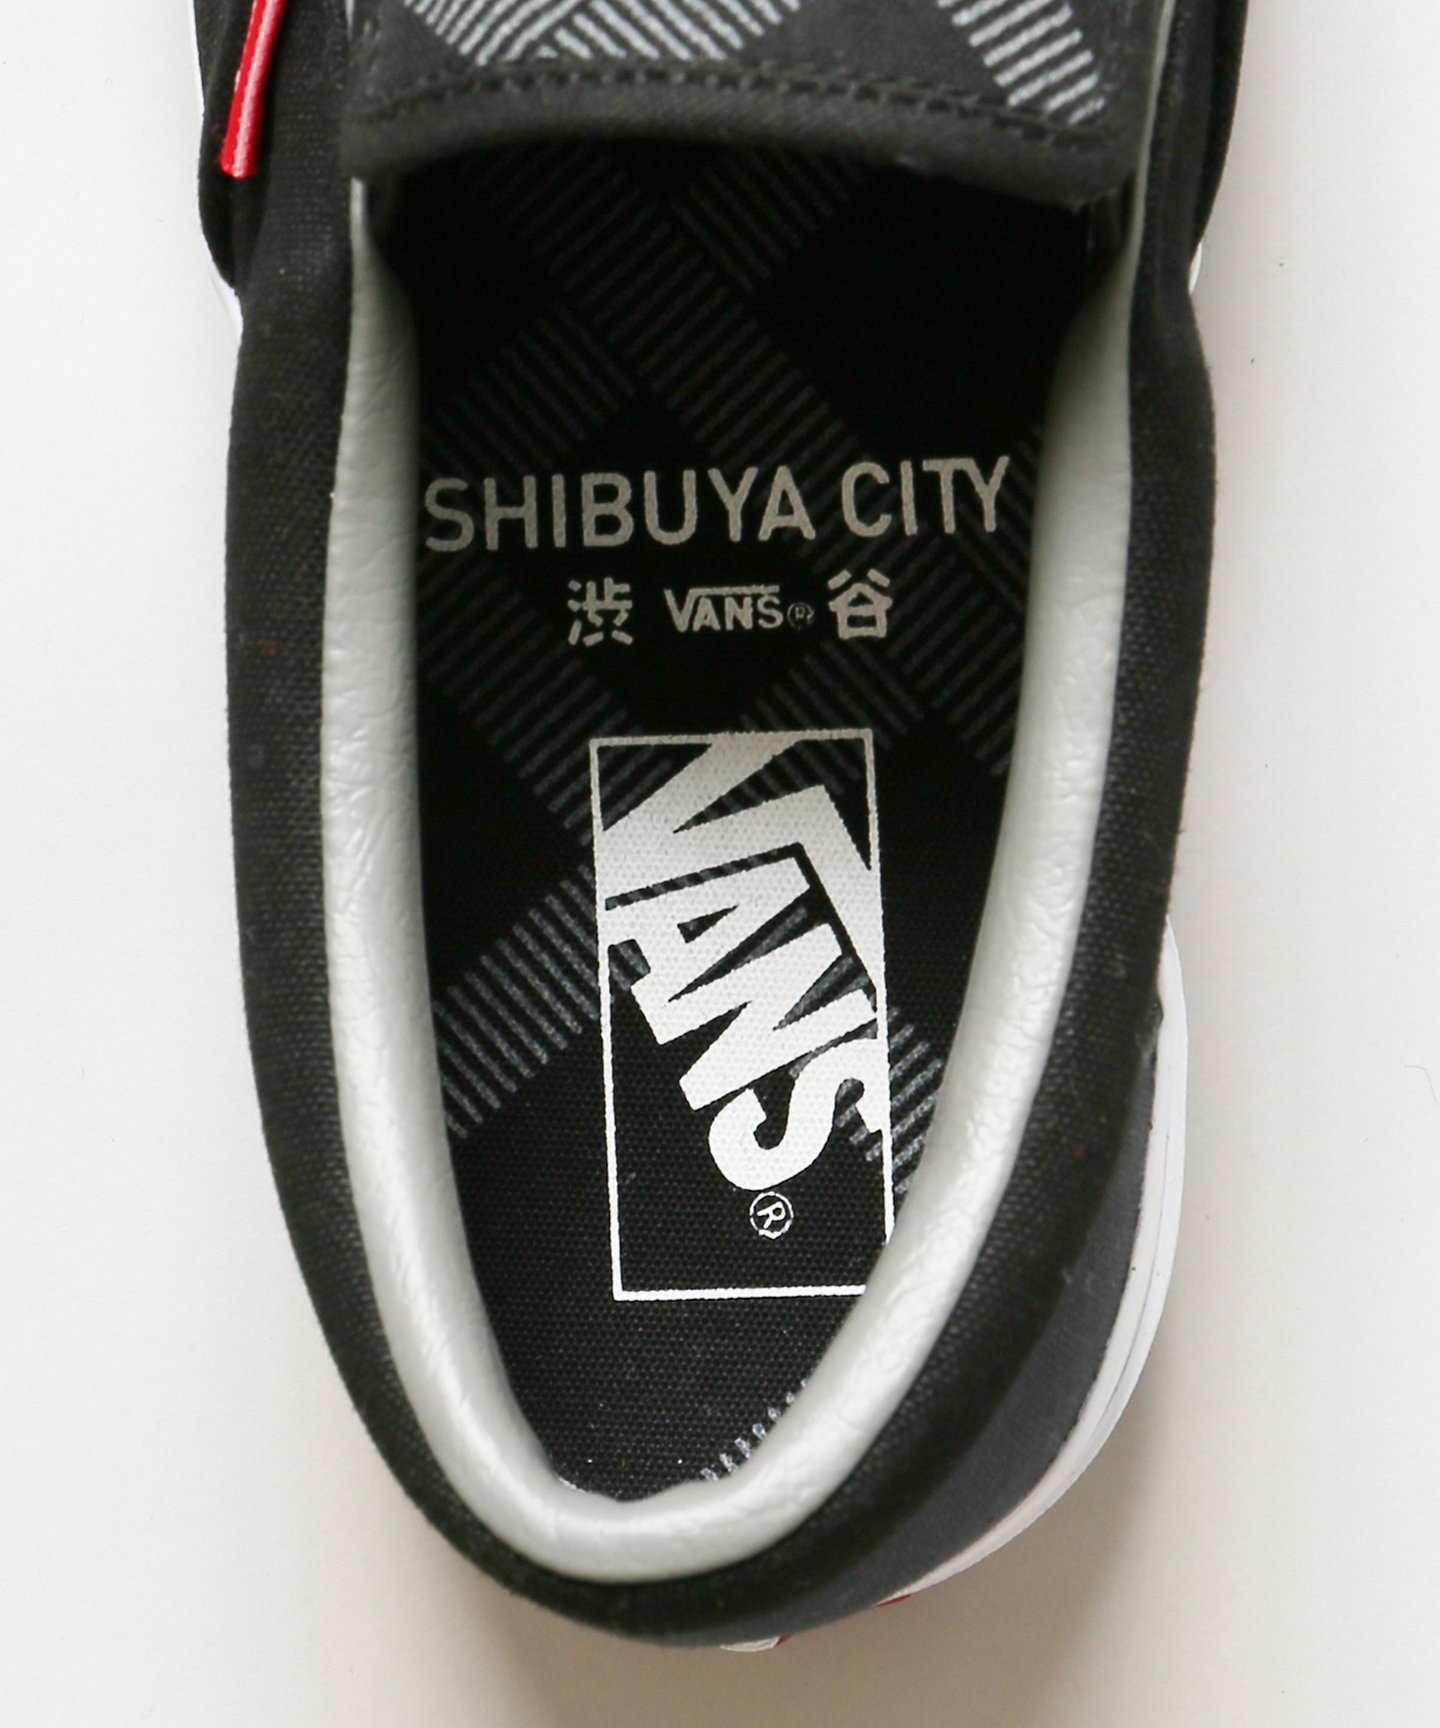 shibuya-city-vans-slip-on-collaboration-release-20180110